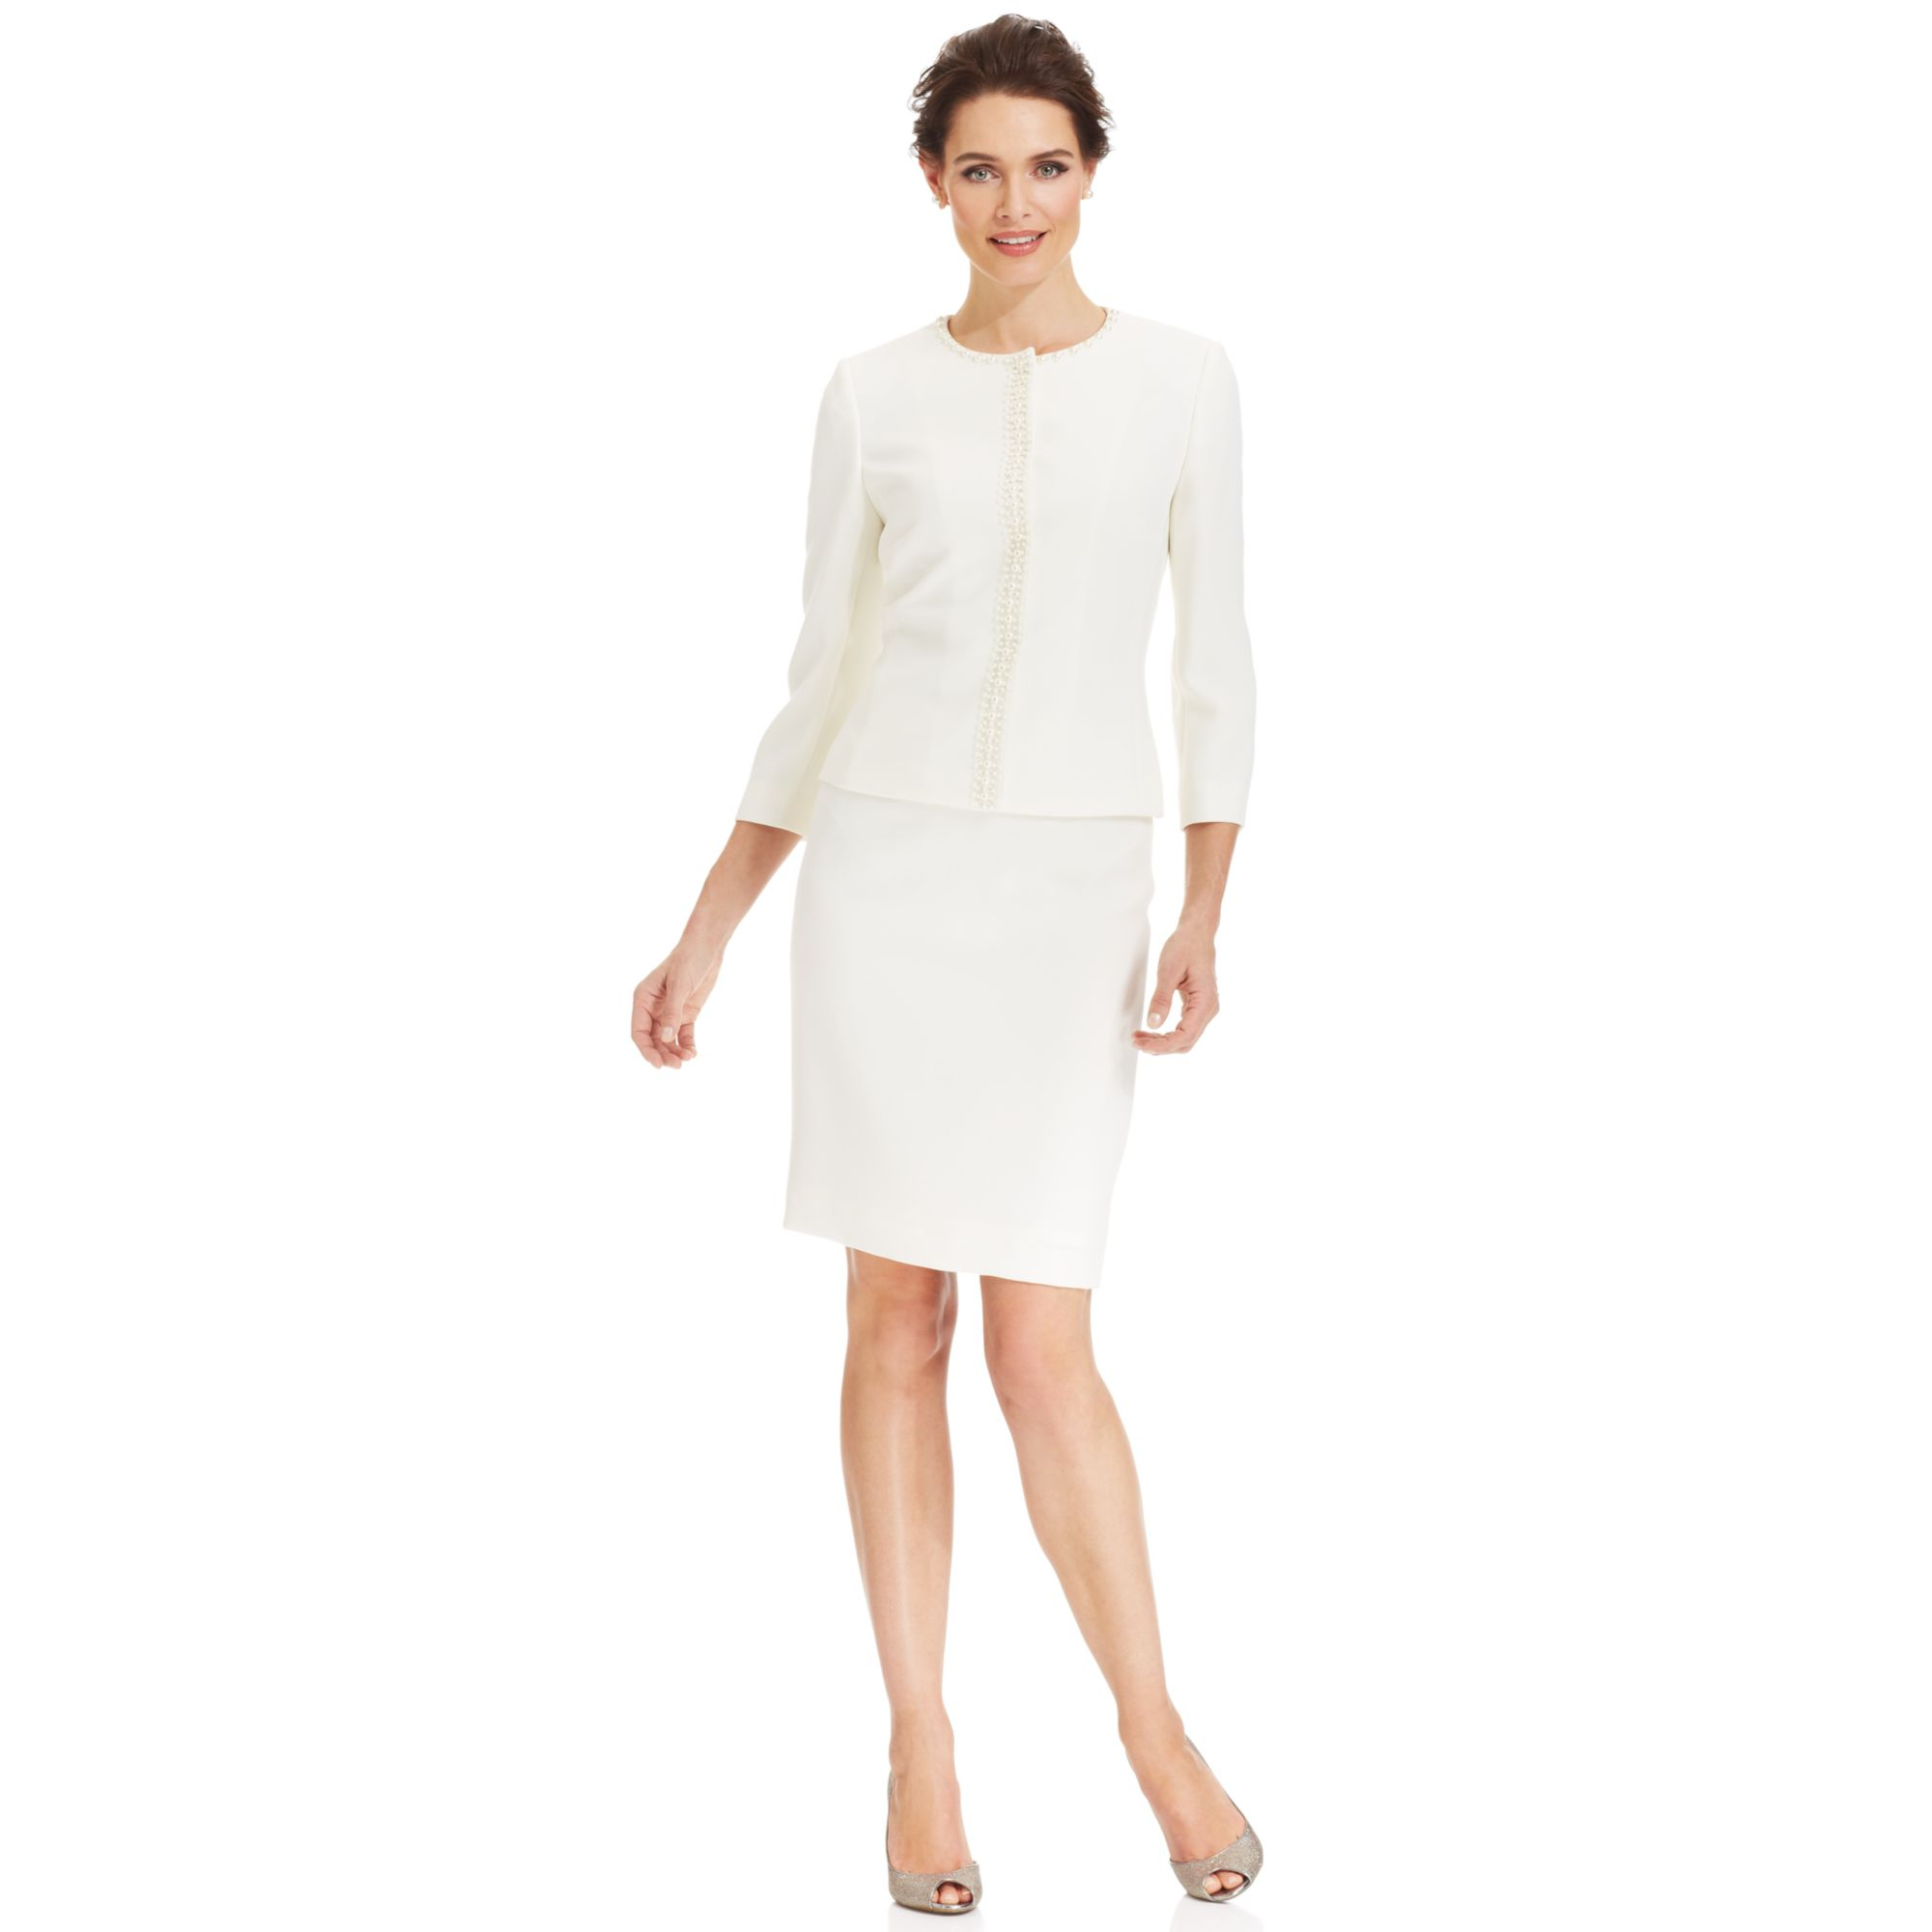 9f7a23721bed ... Tahari Suits For Women: Tahari By Asl Collarless Beaded Skirt Suit In  White